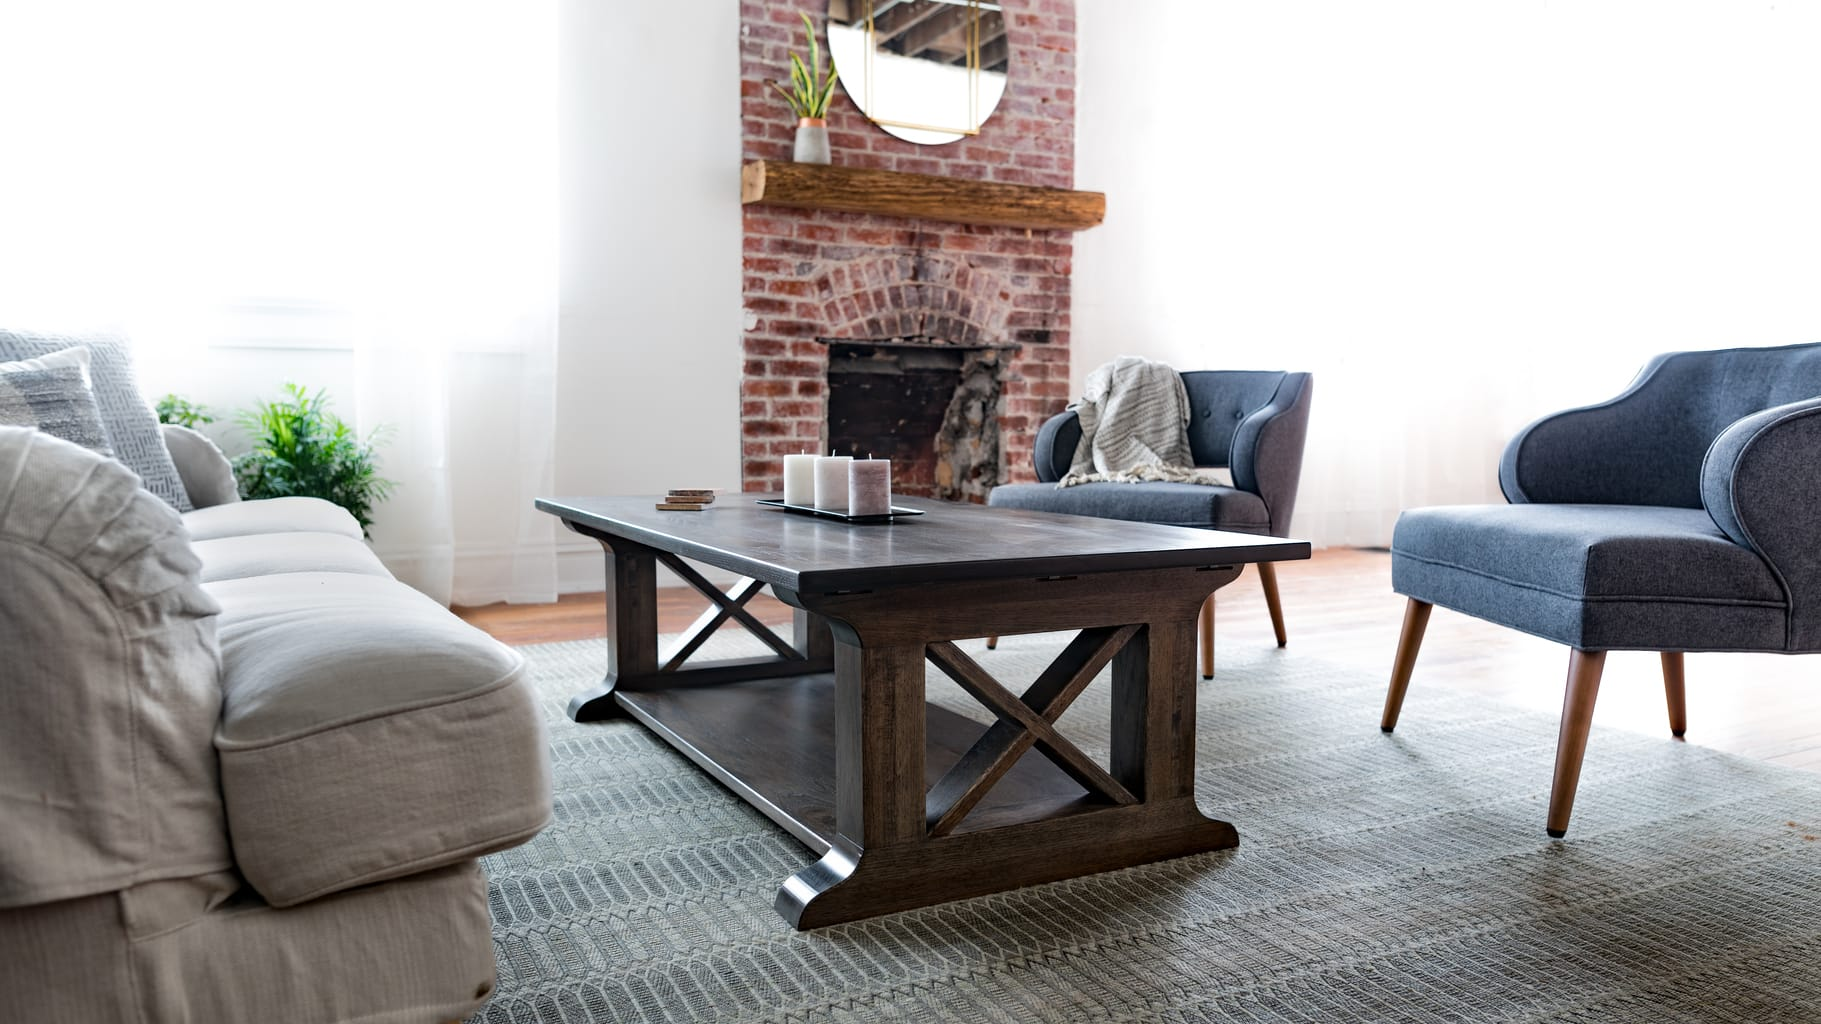 Unruh's Farmhouse Coffee Table is perfect for a Texas living room